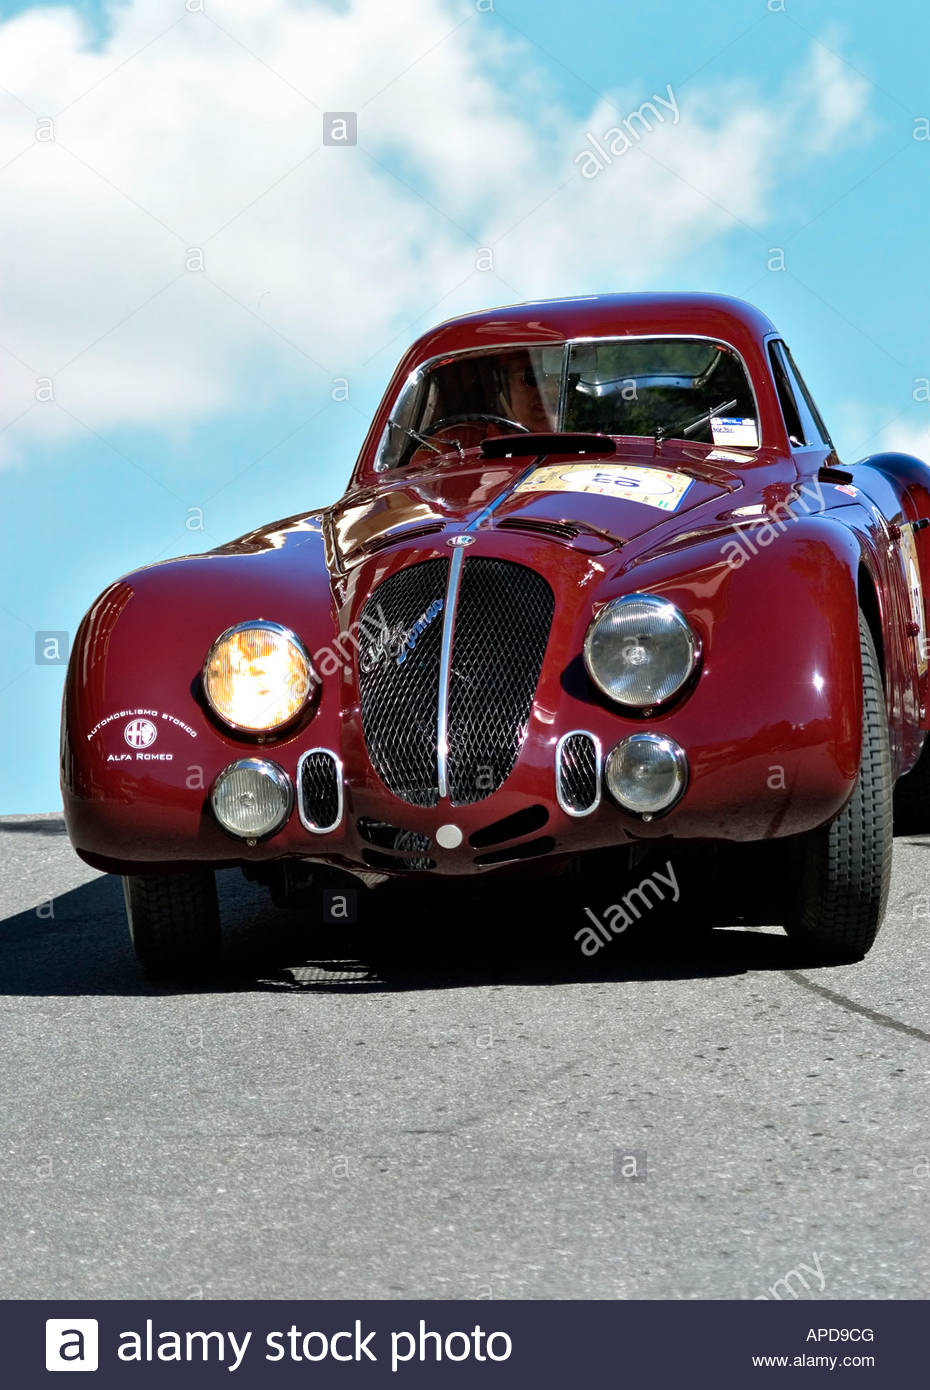 Vintage Alfa Romeo Oldtimer Racing During The Arosa Mountain Rally In  Switzerland   Stock Image